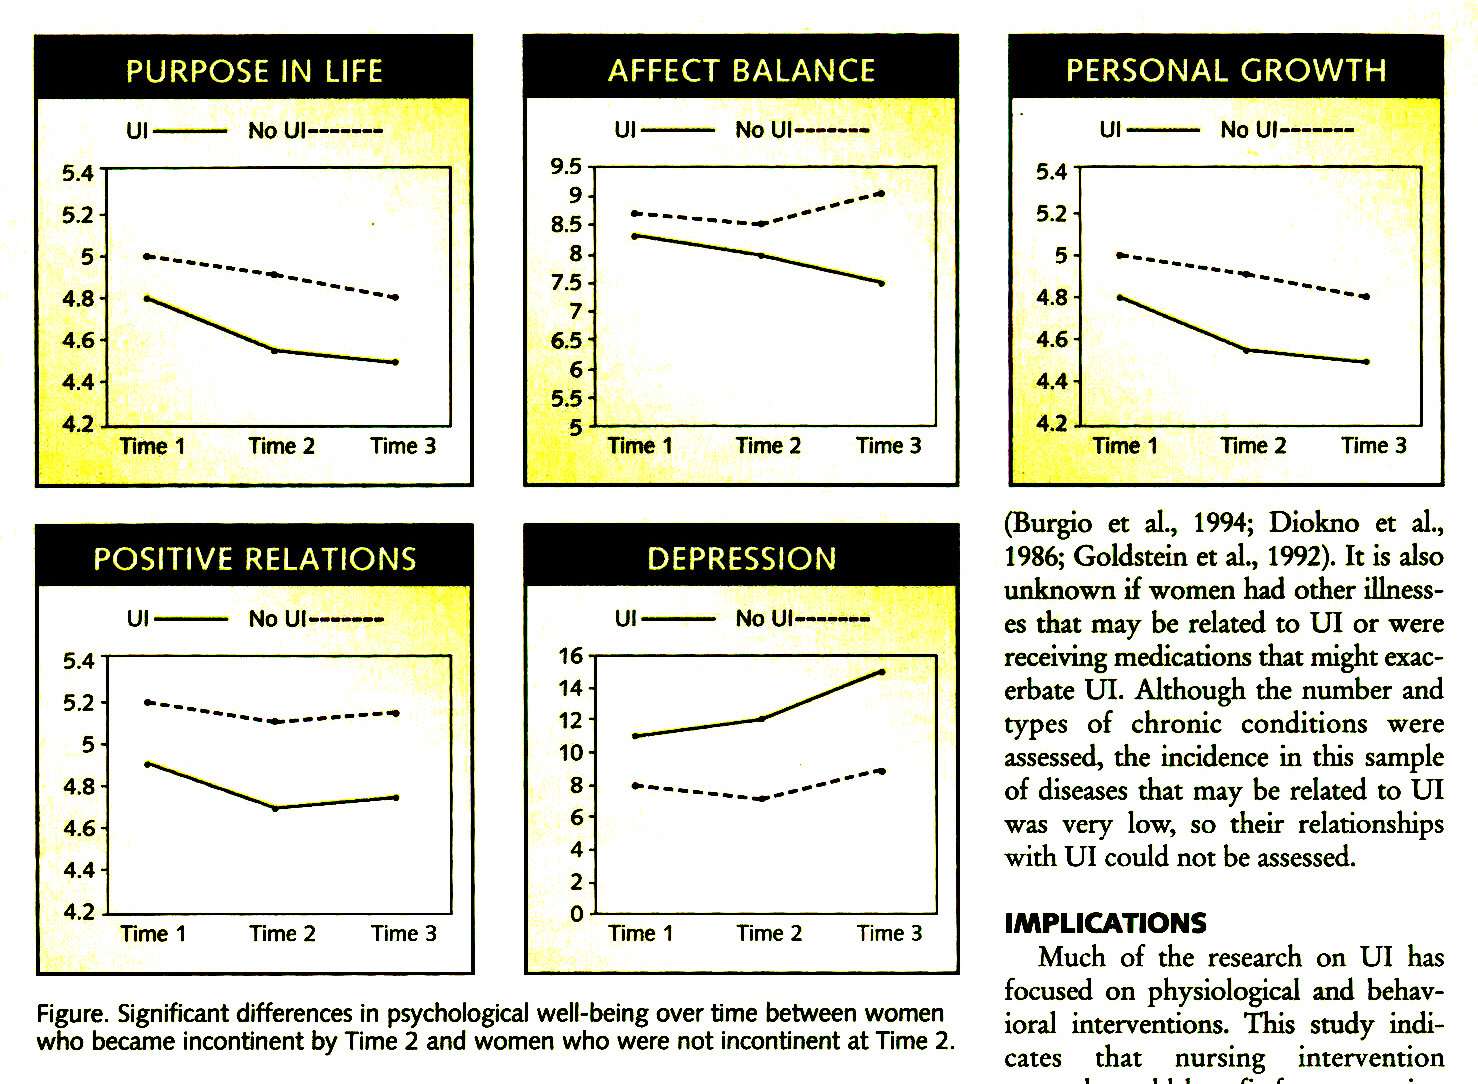 Figure. Significant differences in psychological well-being over time between women who became incontinent by Time 2 and women who were not incontinent at Time 2.